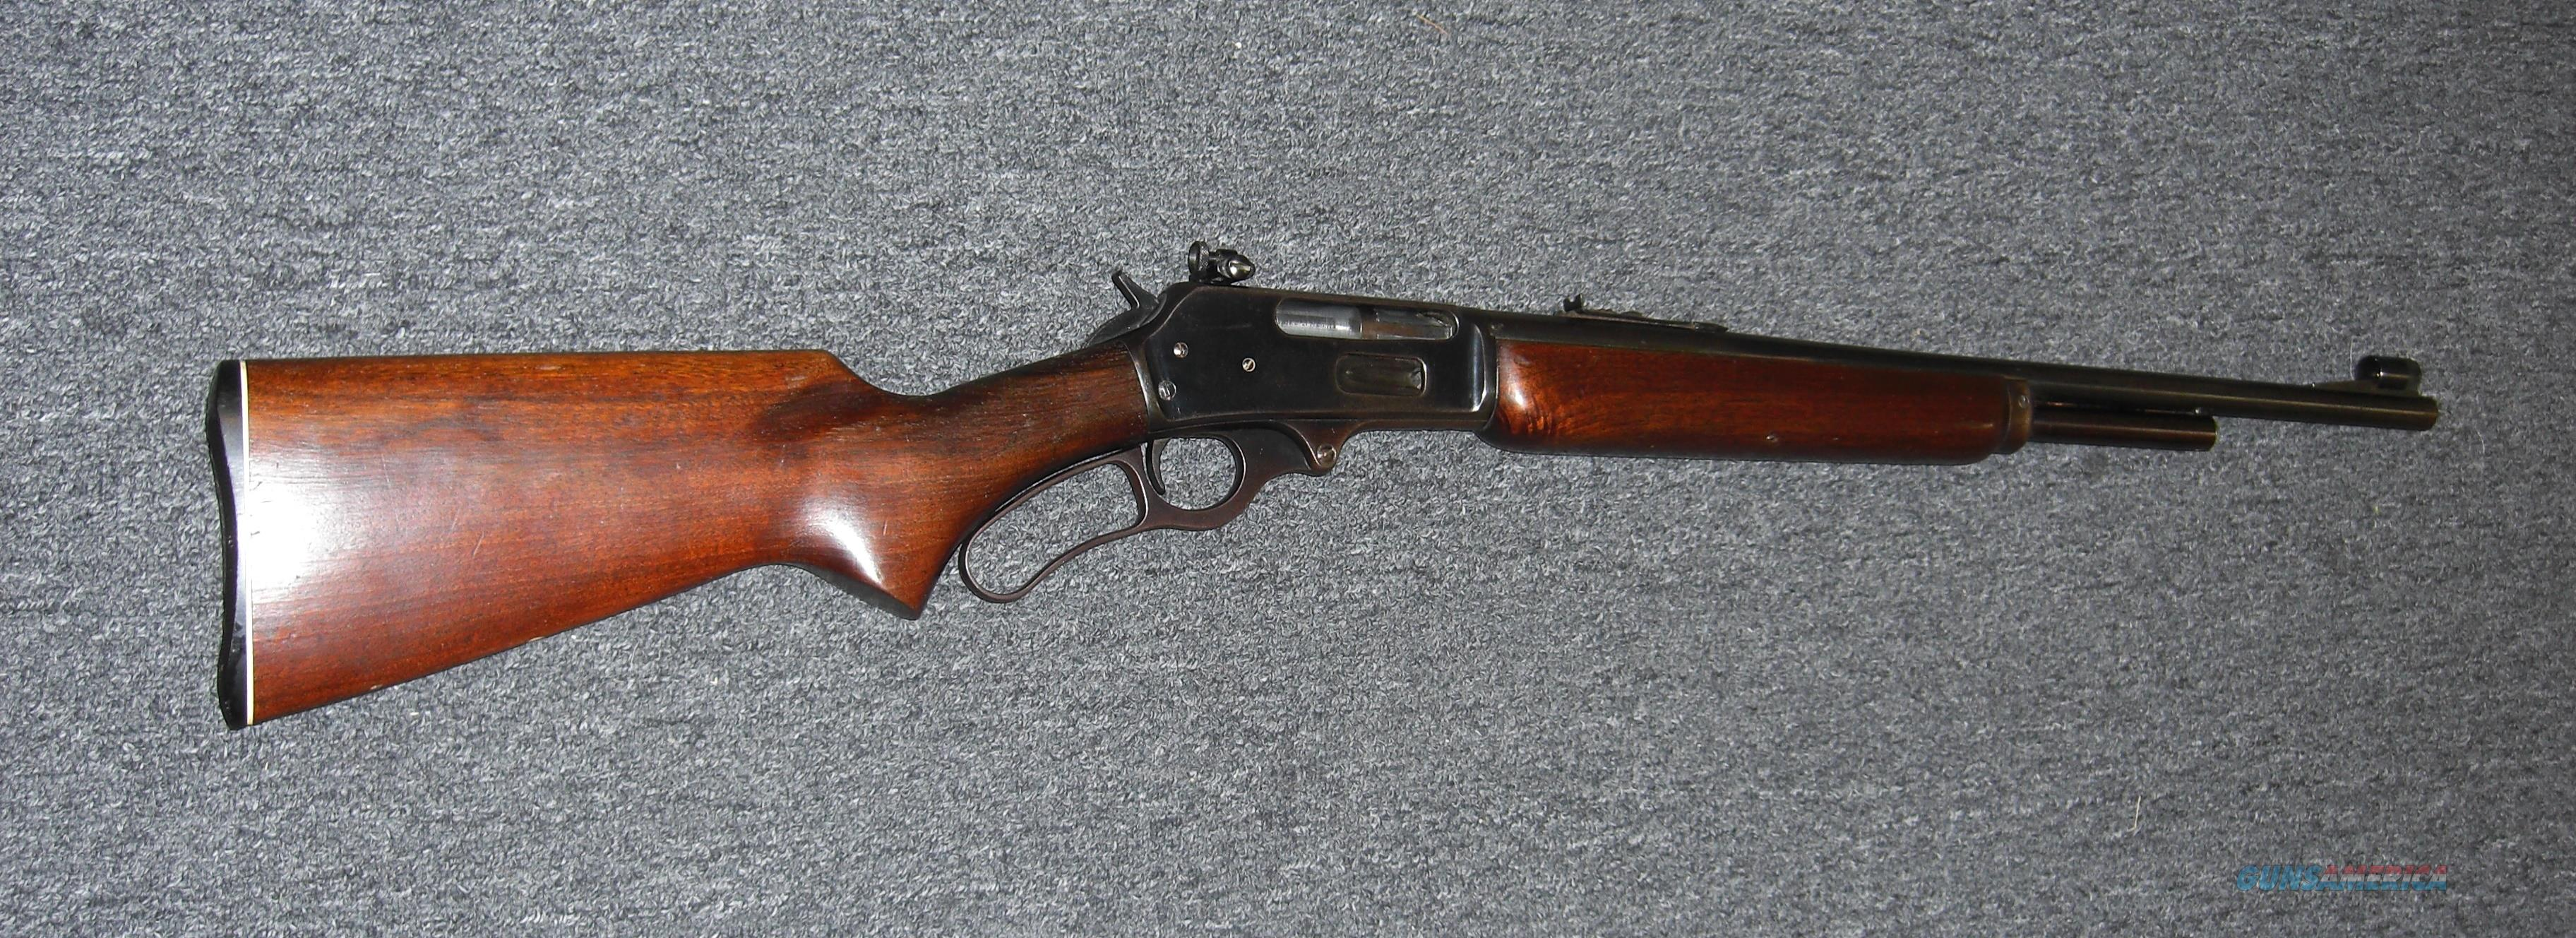 ARMSLIST - For Sale/Trade: marlin 336 .35 rem with 3-9 scope